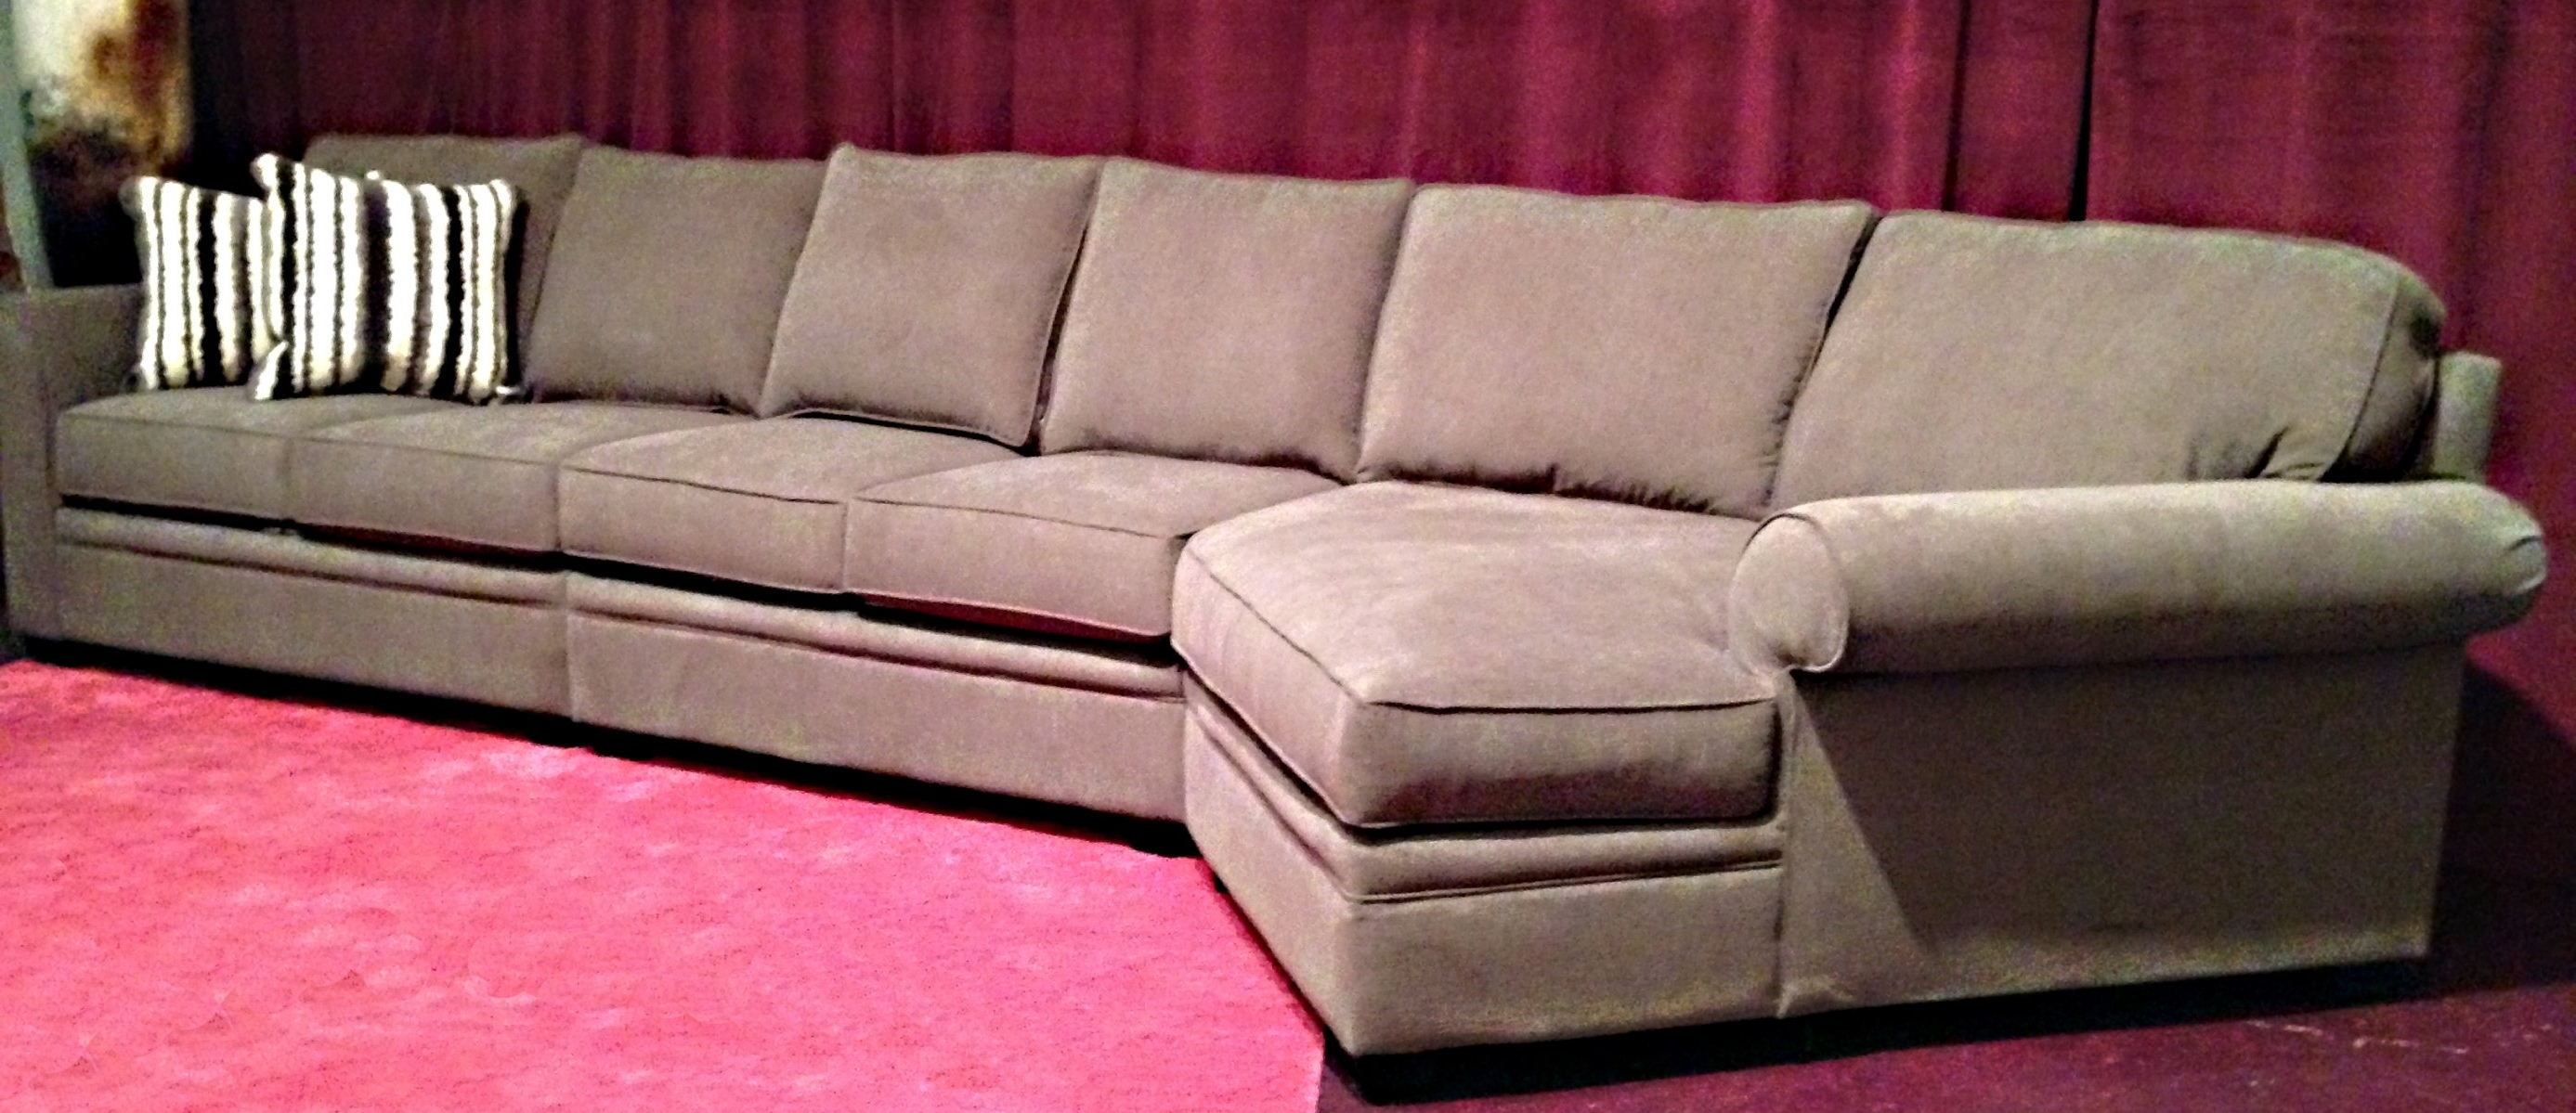 Most Recently Released Extra Long Reclining Sofa Within Long Sectional Sofas With Chaise (View 13 of 20)